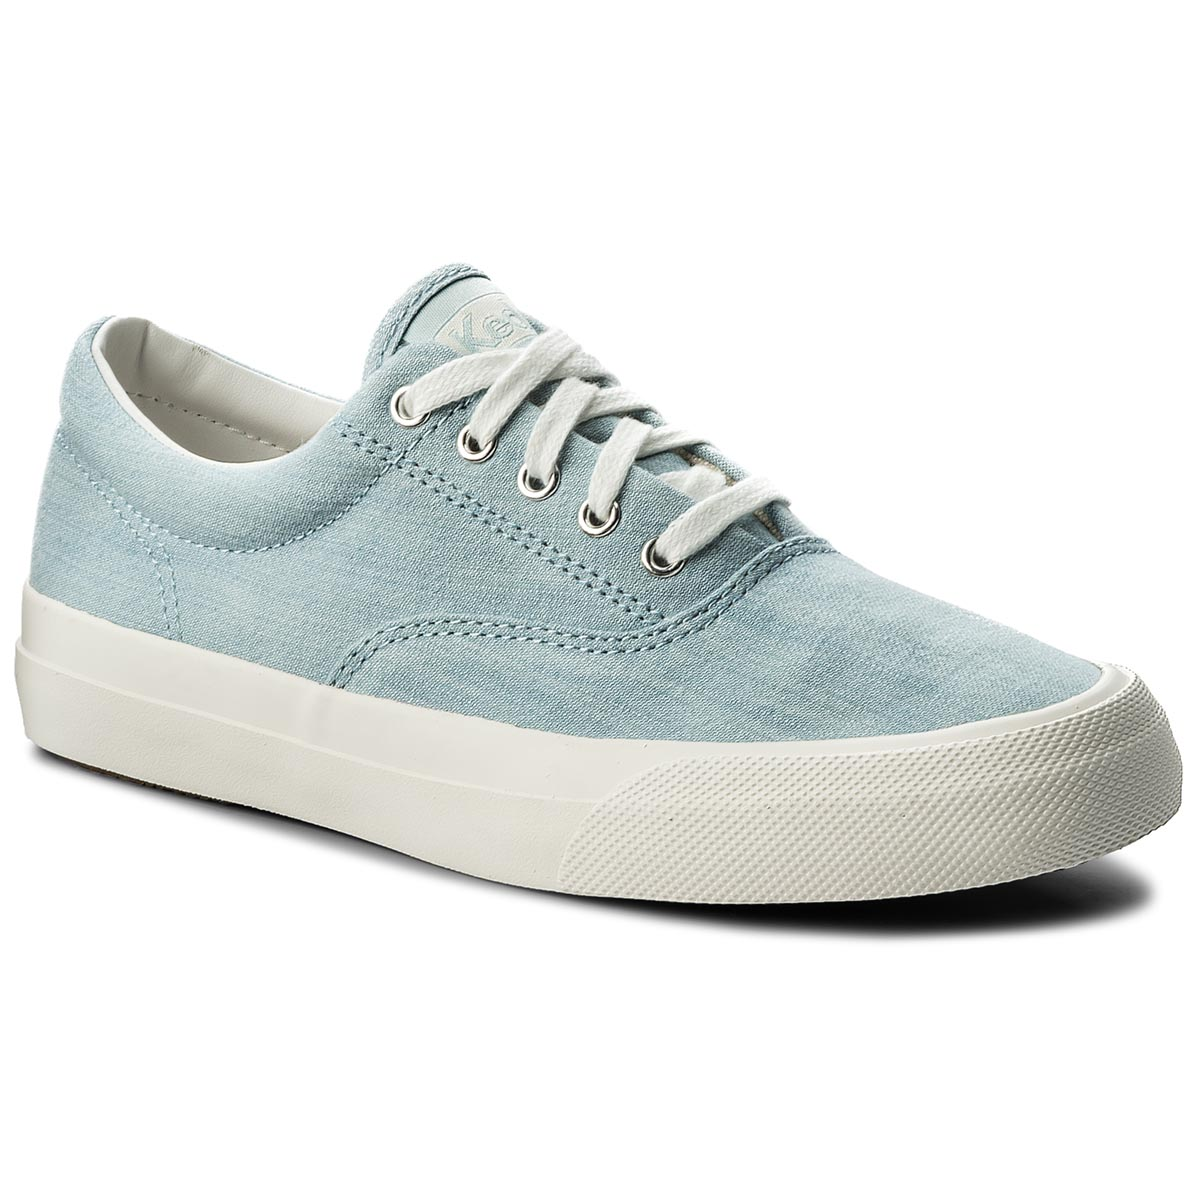 Teniși KEDS - Anchor Chambray WF58144 Lt Blue